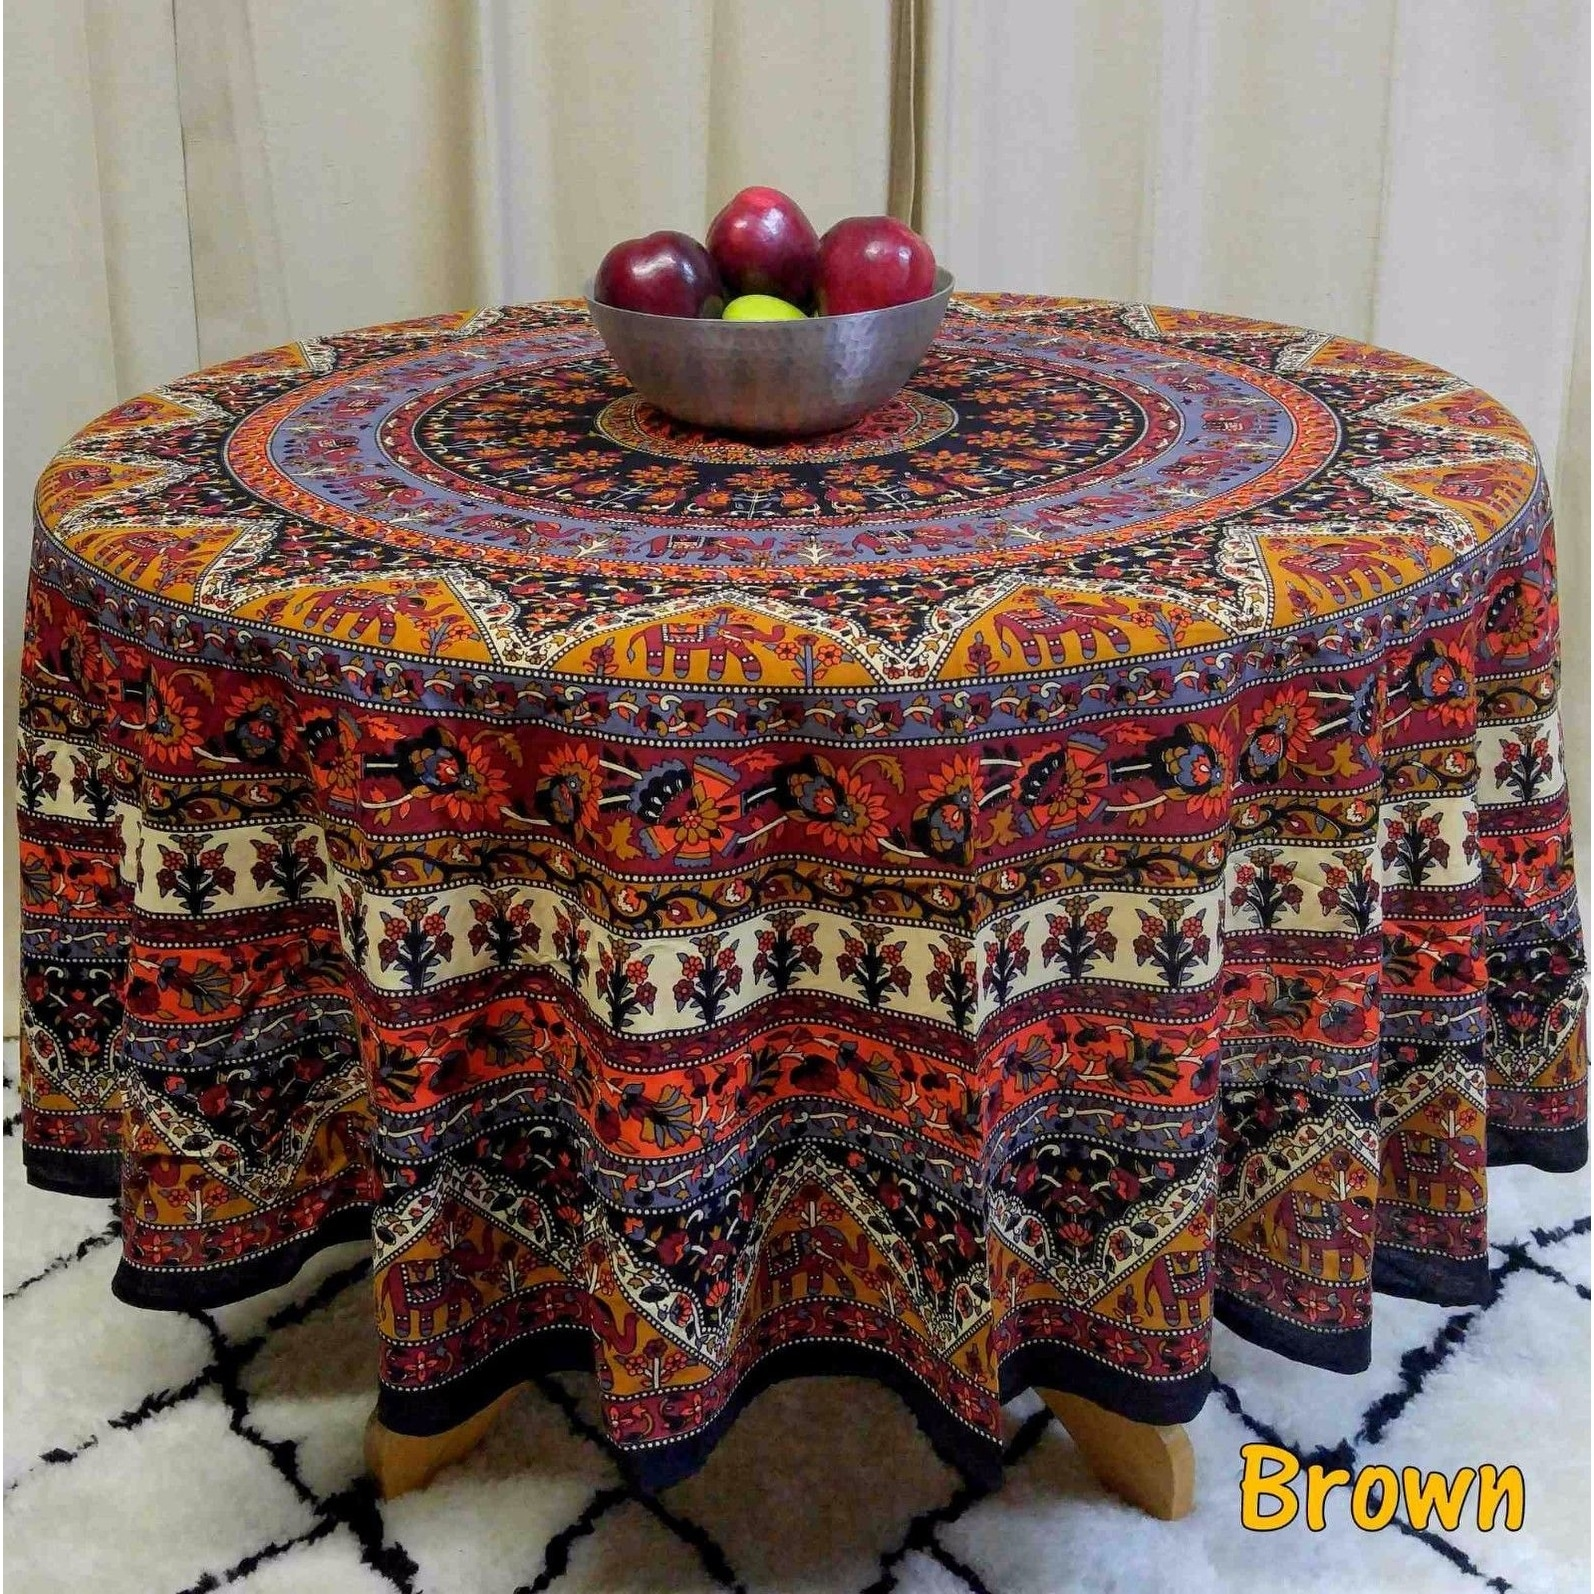 "Handmade Mandala Floral and Elephant Printed Cotton Tablecloth available in Red Blue & Brown in two sizes 76"" Round & 90"" Round - Thumbnail 4"